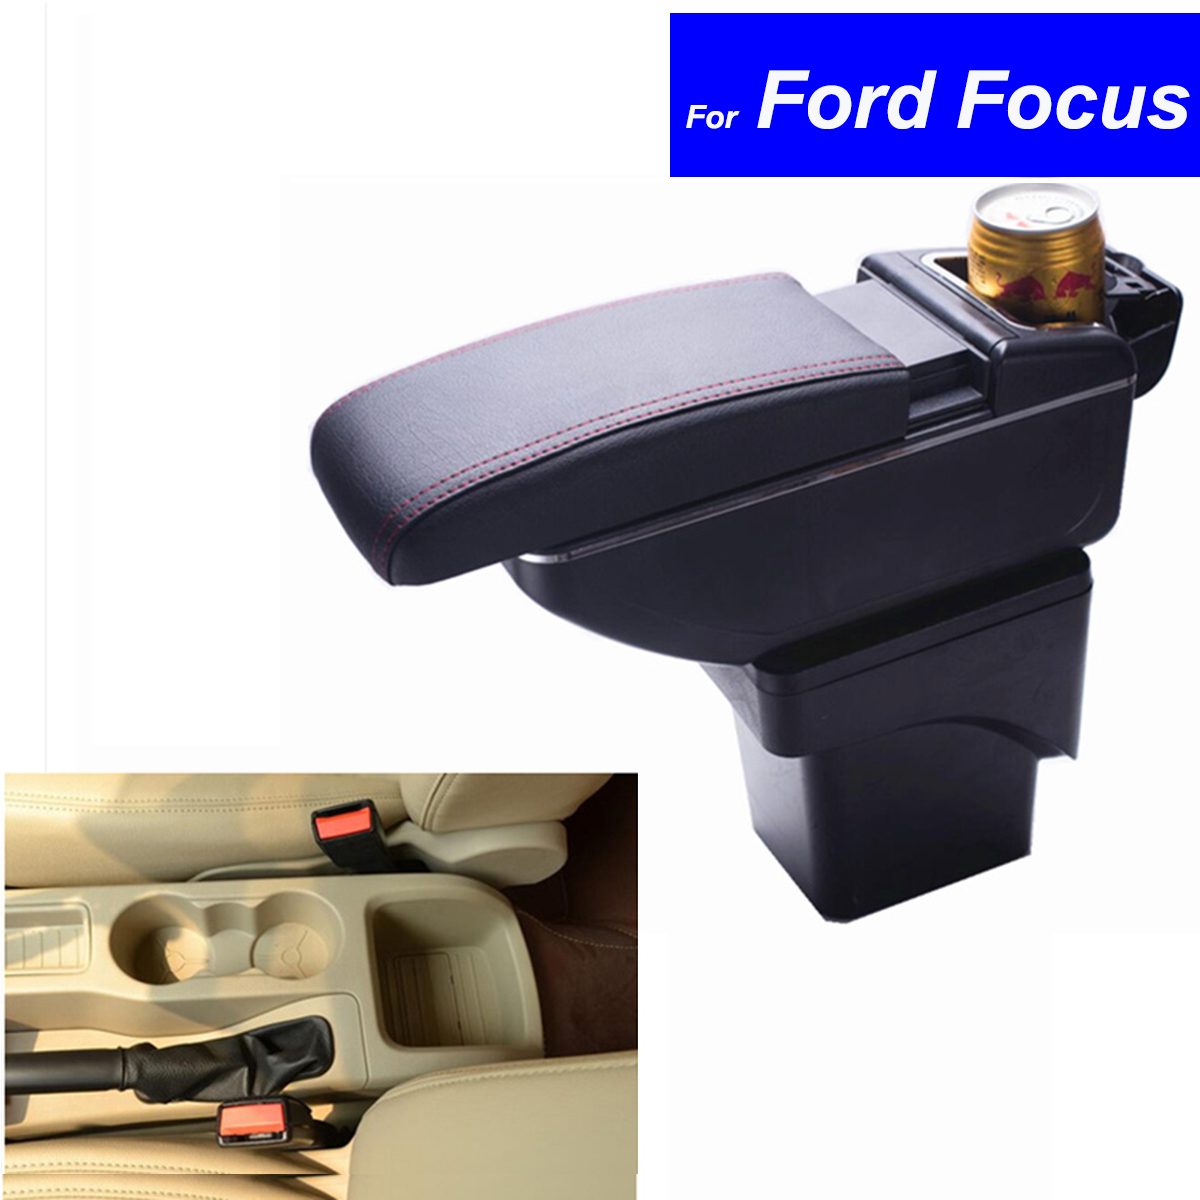 Leather Car Center Console Armrests Storage Box for Ford Focus 2007 2008 2009 2010 2011 2012 2013 2014 Auto Parts Free Shipping 7 generation car center console armrest storage box suitable for ford focus 2 focus 3 auto accessories